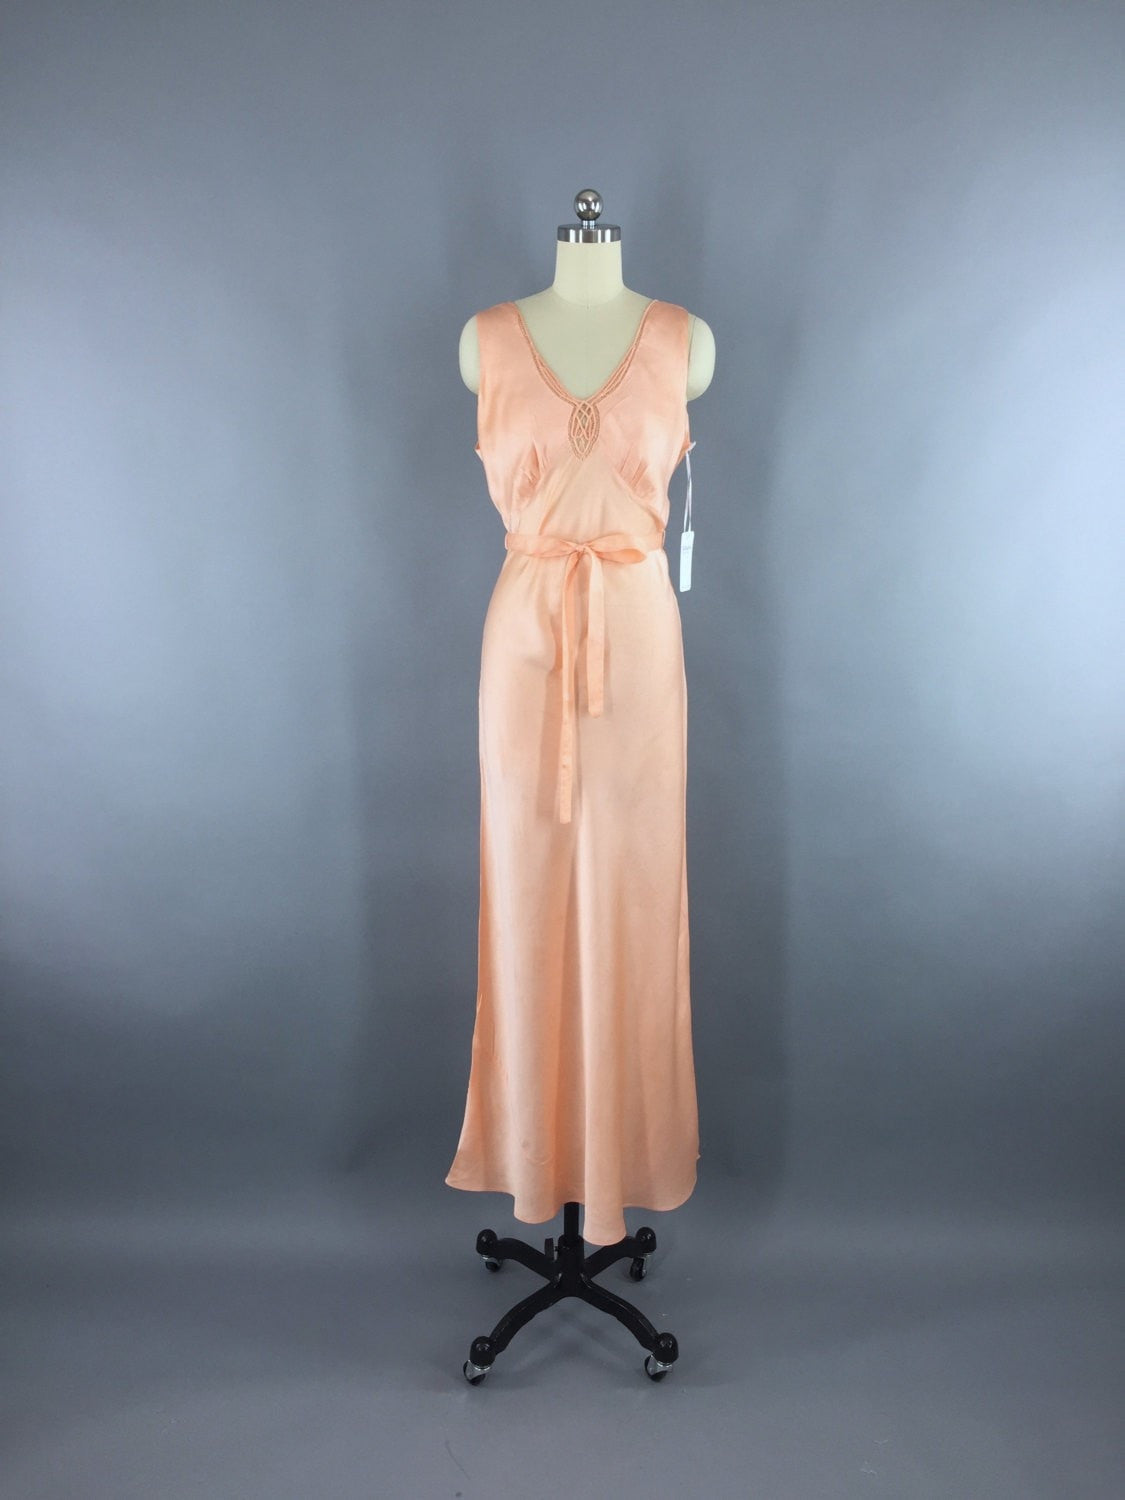 Vintage 1930s Nightgown / Bias Cut Peach Satin Lingerie ThisBlueBird